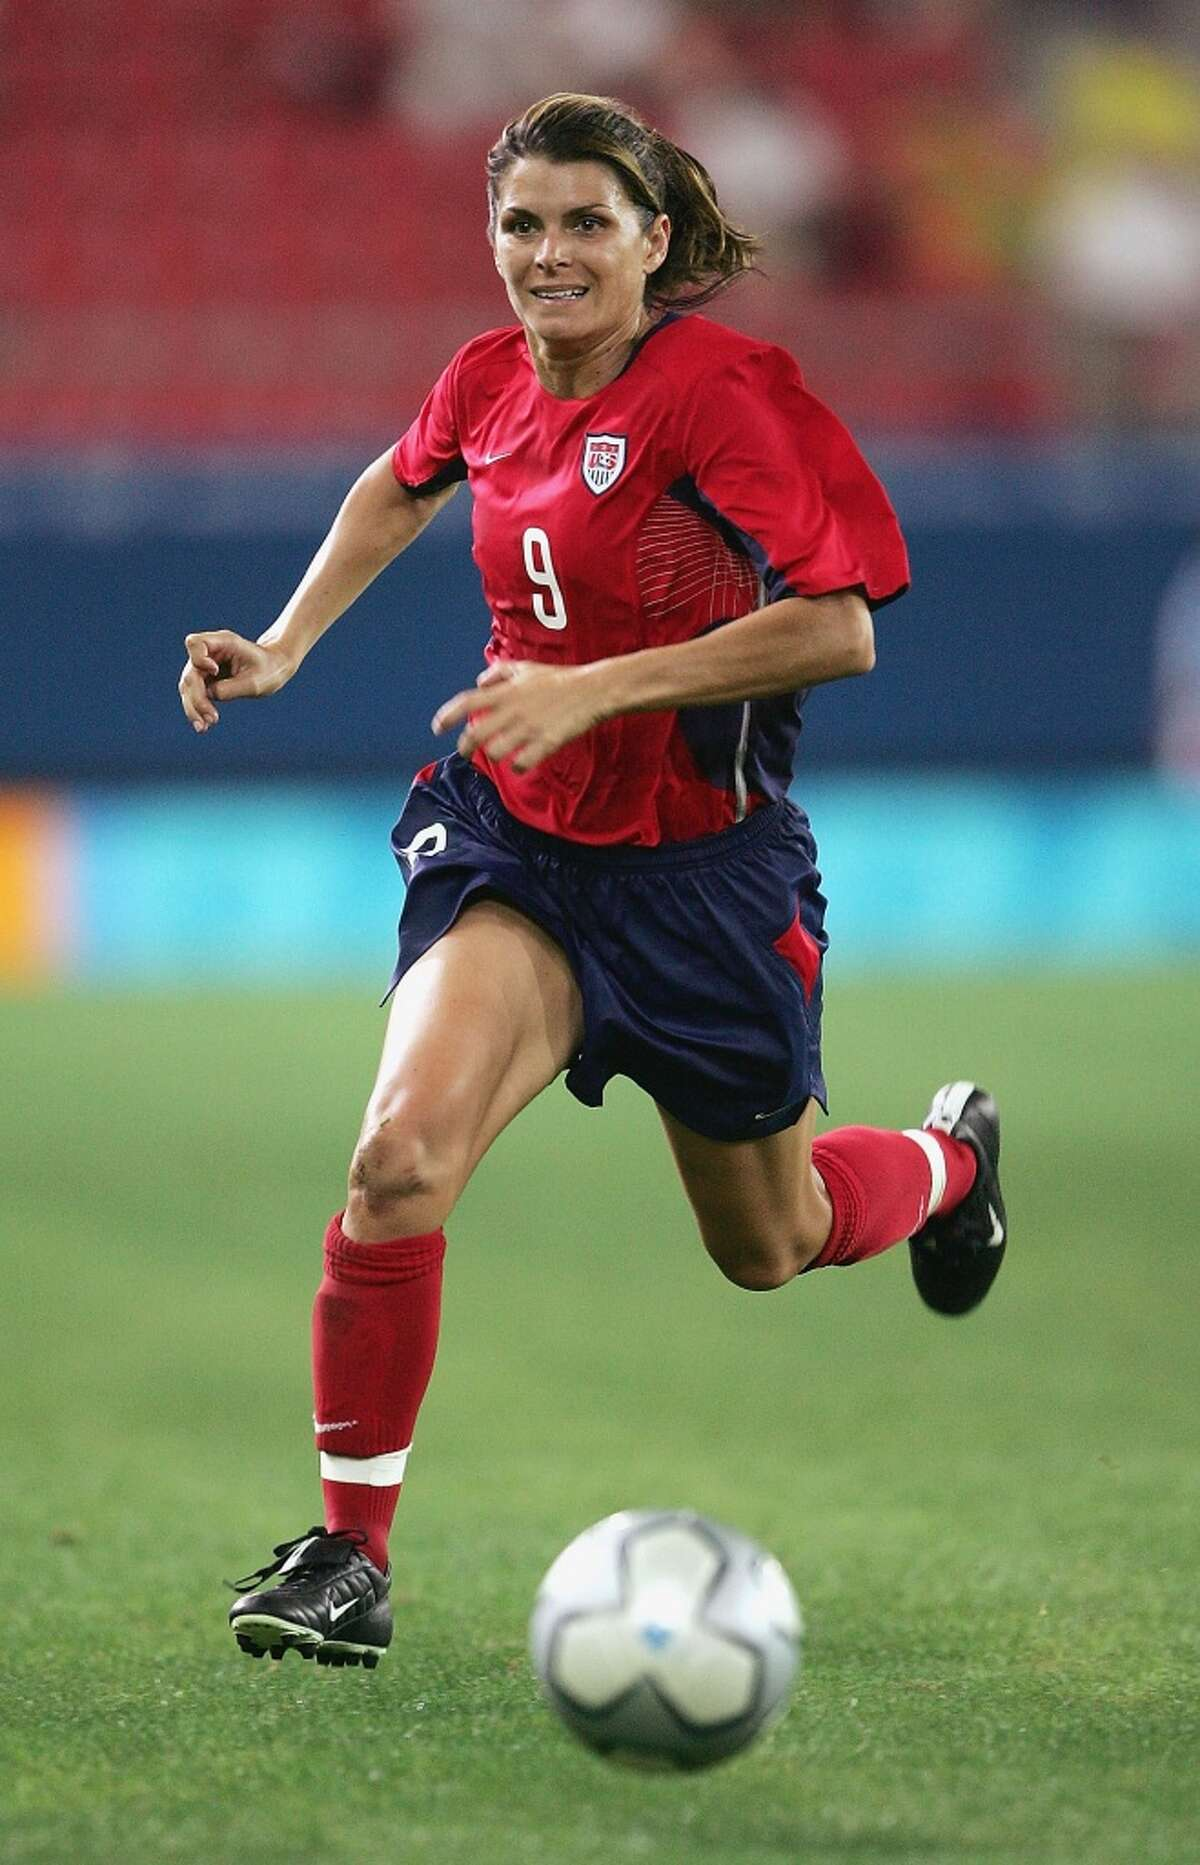 Mia Hamm of the USA competes in the women's football gold medal match on August 26, 2004 during the Athens 2004 Summer Olympic Games at Karaiskaki Stadium in Athens, Greece.